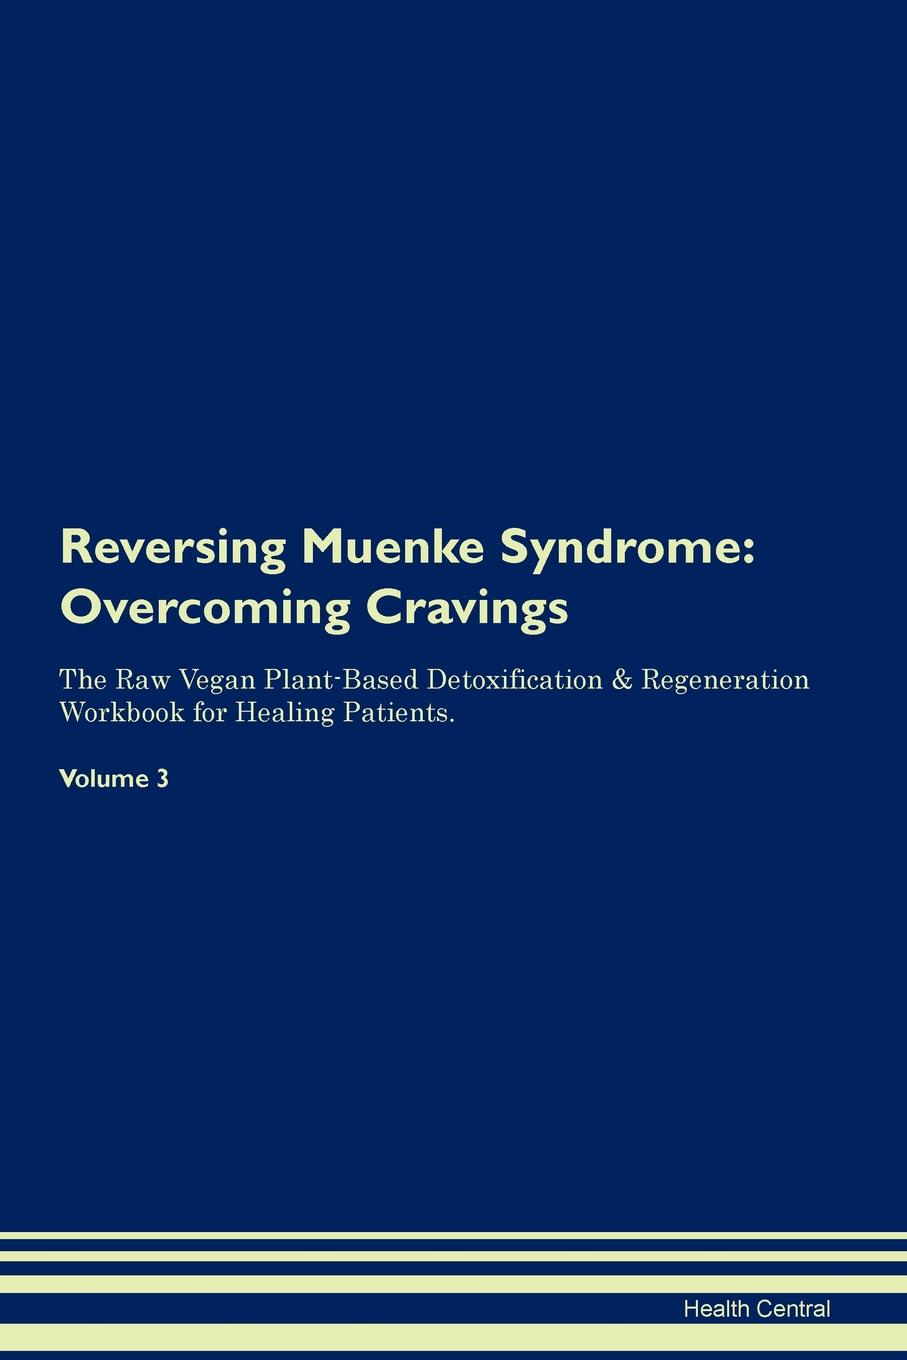 Health Central Reversing Muenke Syndrome. Overcoming Cravings The Raw Vegan Plant-Based Detoxification . Regeneration Workbook for Healing Patients. Volume 3 prevalance of metabolic syndrome in baghdad